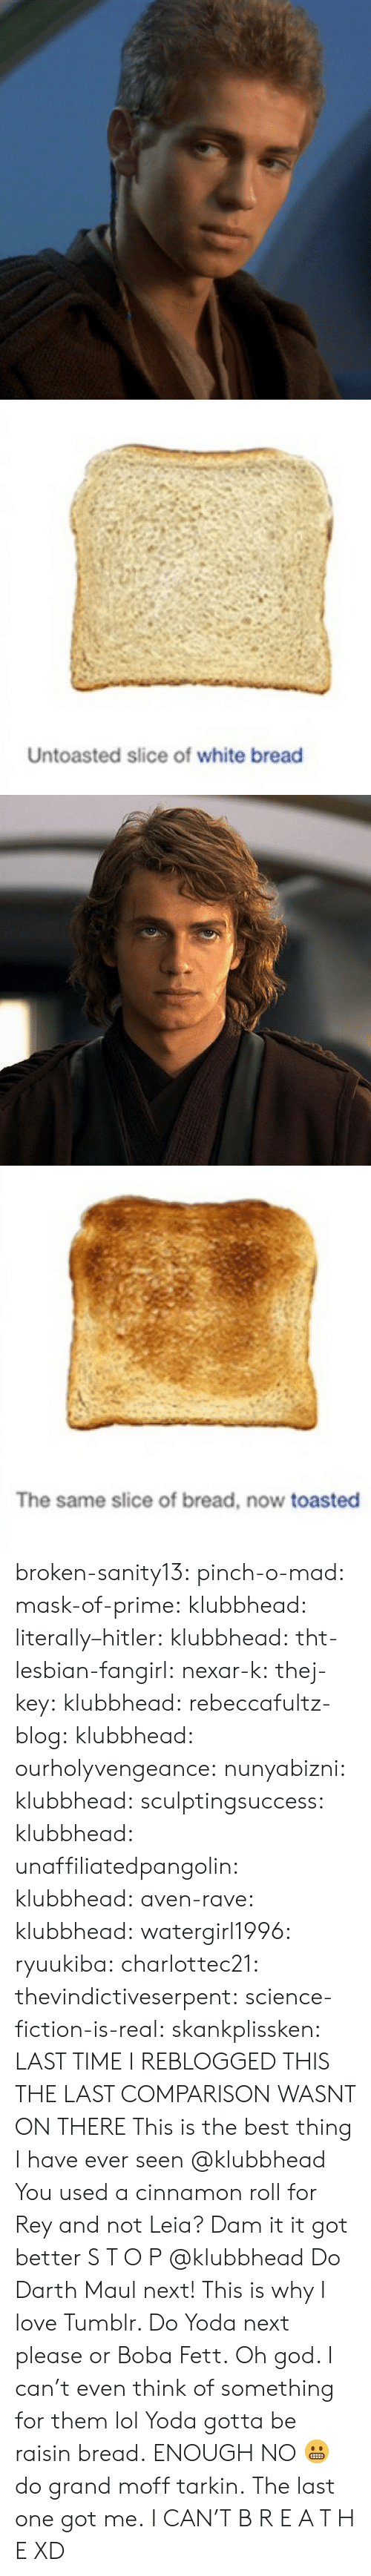 last one: Untoasted slice of white bread   The same slice of bread, now toasted broken-sanity13:  pinch-o-mad:   mask-of-prime:  klubbhead:  literally–hitler:  klubbhead:  tht-lesbian-fangirl:  nexar-k:  thej-key:  klubbhead:  rebeccafultz-blog:   klubbhead:  ourholyvengeance:  nunyabizni:  klubbhead:  sculptingsuccess:  klubbhead:   unaffiliatedpangolin:  klubbhead:  aven-rave:  klubbhead:   watergirl1996:  ryuukiba:  charlottec21:  thevindictiveserpent:  science-fiction-is-real:  skankplissken:                   LAST TIME I REBLOGGED THIS THE LAST COMPARISON WASNT ON THERE    This is the best thing I have ever seen   @klubbhead You used a cinnamon roll for Rey and not Leia?    Dam it it got better   S T O P  @klubbhead Do Darth Maul next!   This is why I love Tumblr. Do Yoda next please or Boba Fett.   Oh god. I can't even think of something for them lol  Yoda gotta be raisin bread.   ENOUGH   NO 😬 do grand moff tarkin.     The last one got me.   I CAN'T  B R E A T H E  XD